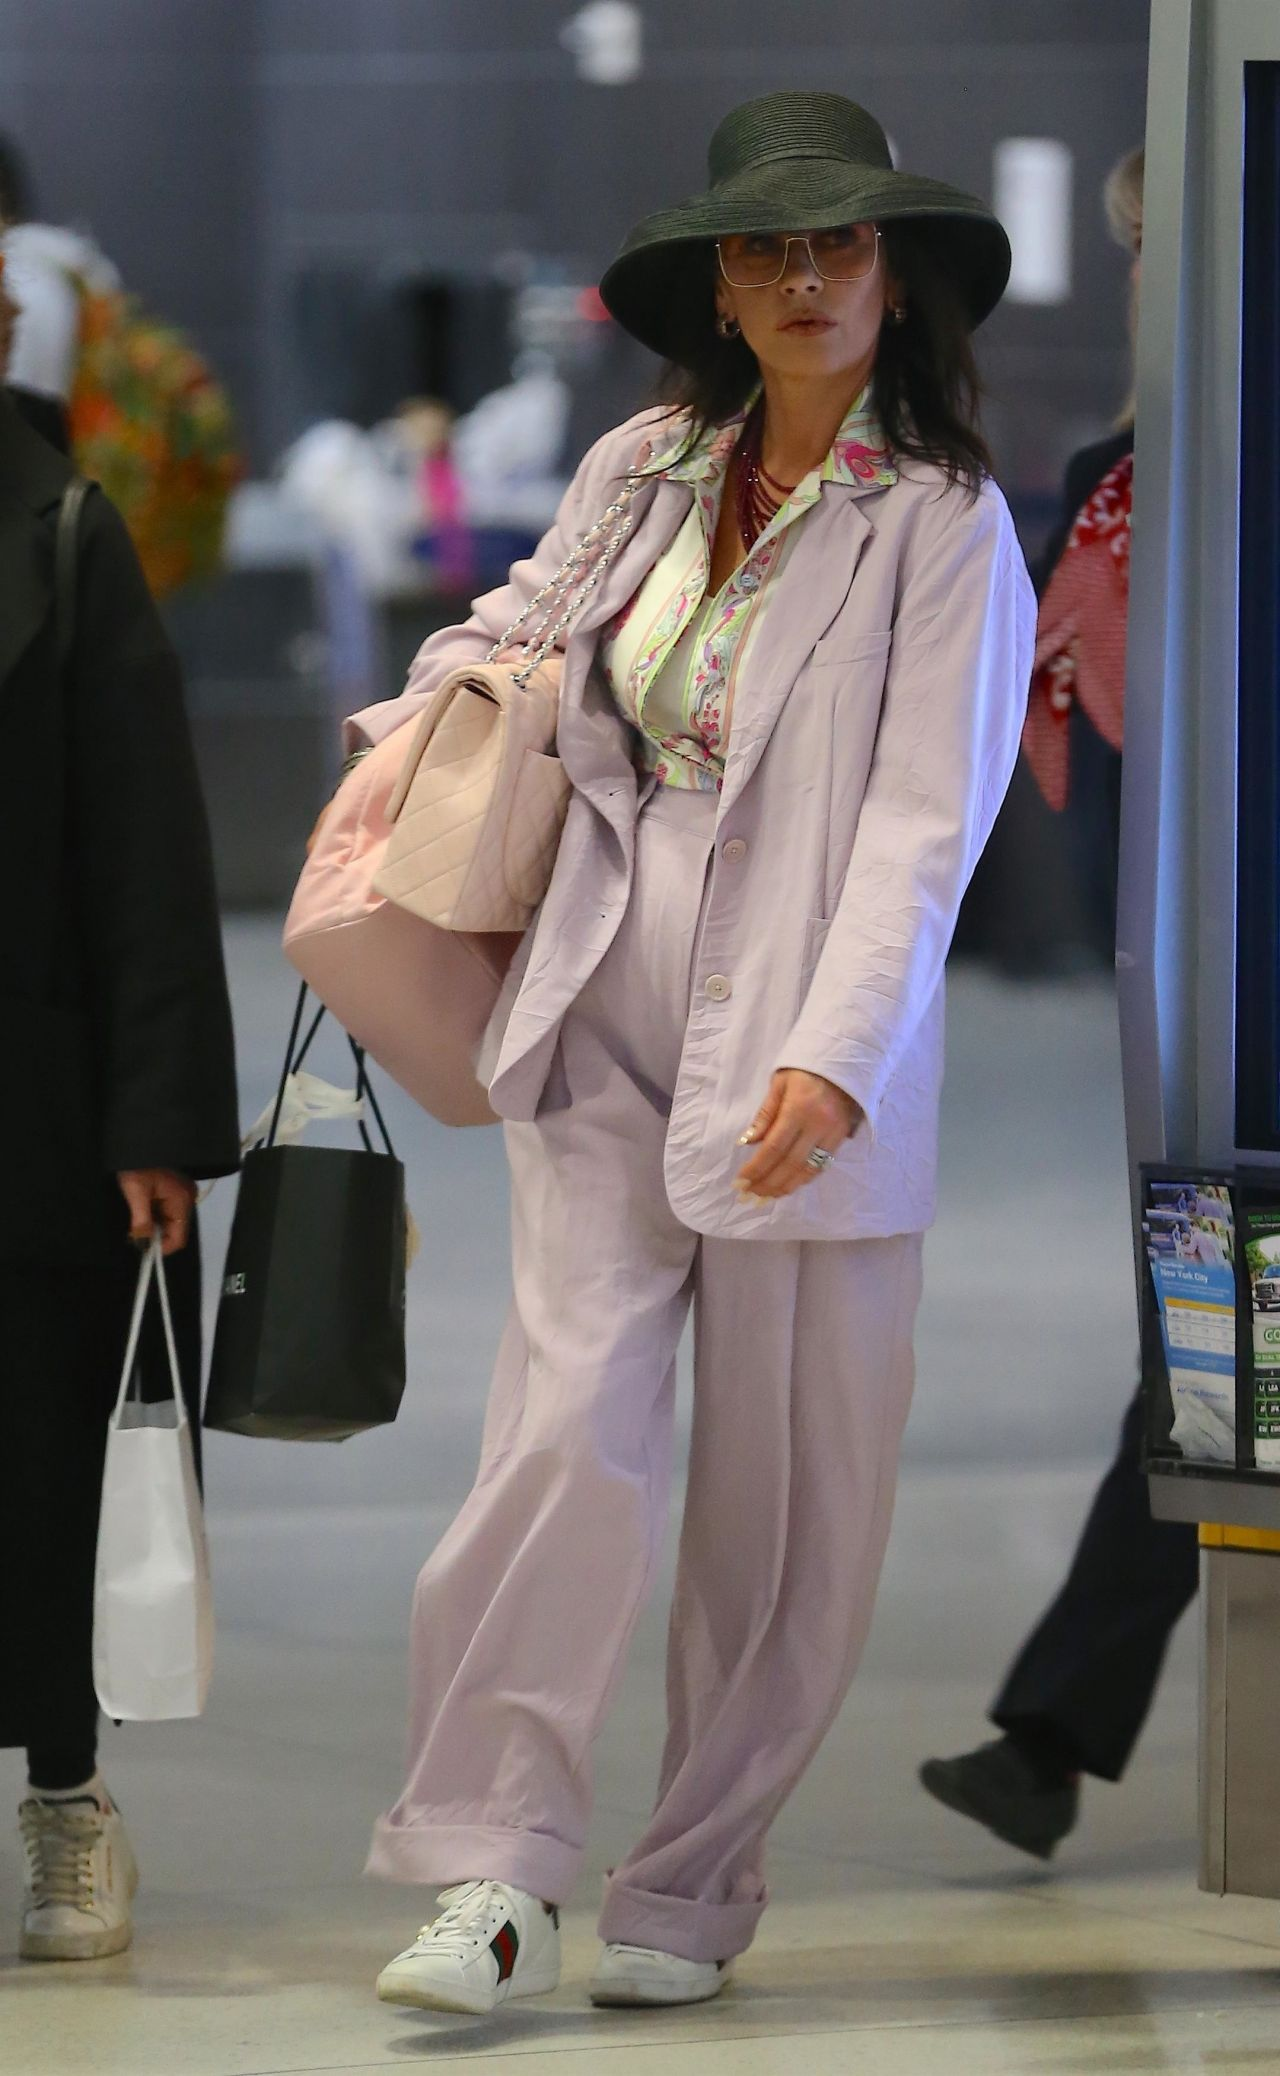 Catherine Zeta Jones Travel Style 03 21 2019